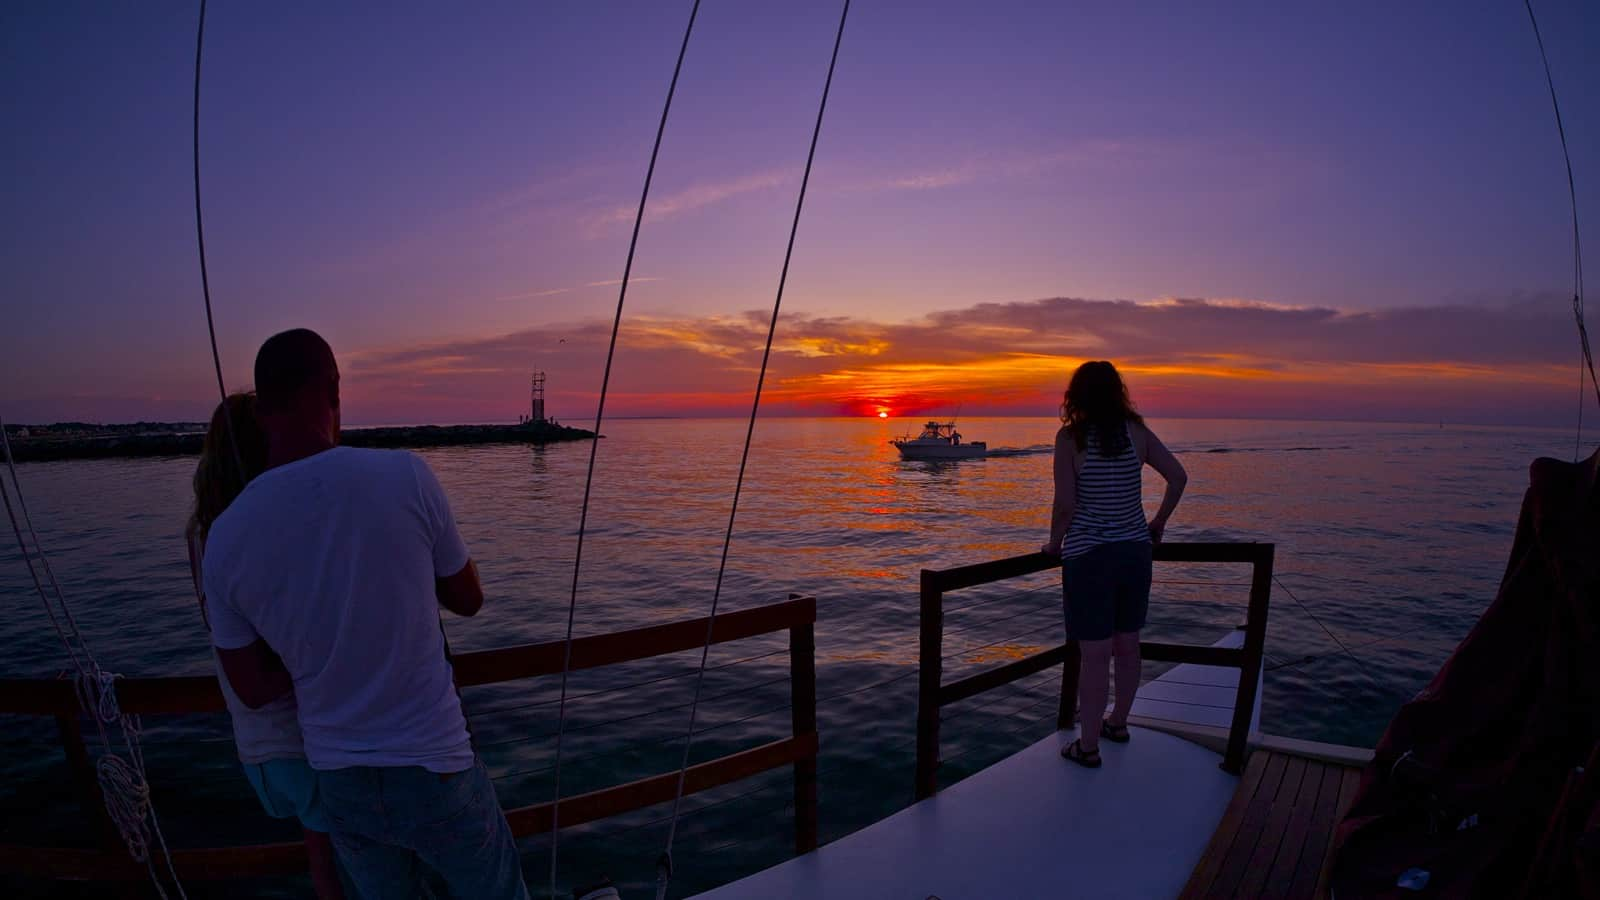 Catamaran Mon Tiki: Sailing Charters , Sunset Cruises and Private Corporate Events in Montauk, the Hamptons